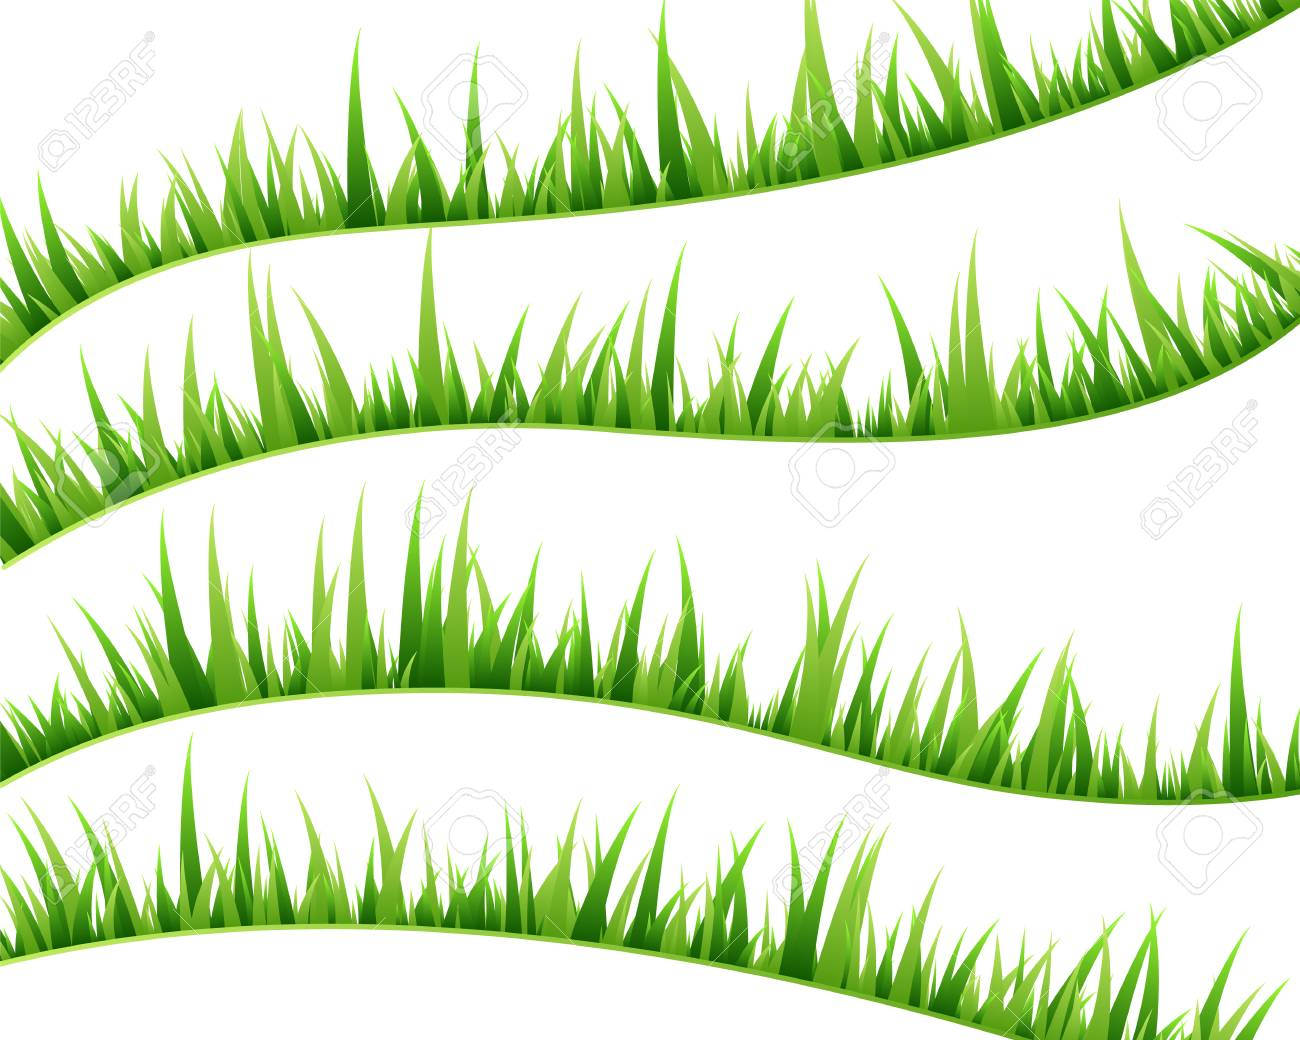 Green grass decorative elements swirl borders set vector green grass decorative elements swirl borders set vector illustration stock vector 97019036 altavistaventures Images